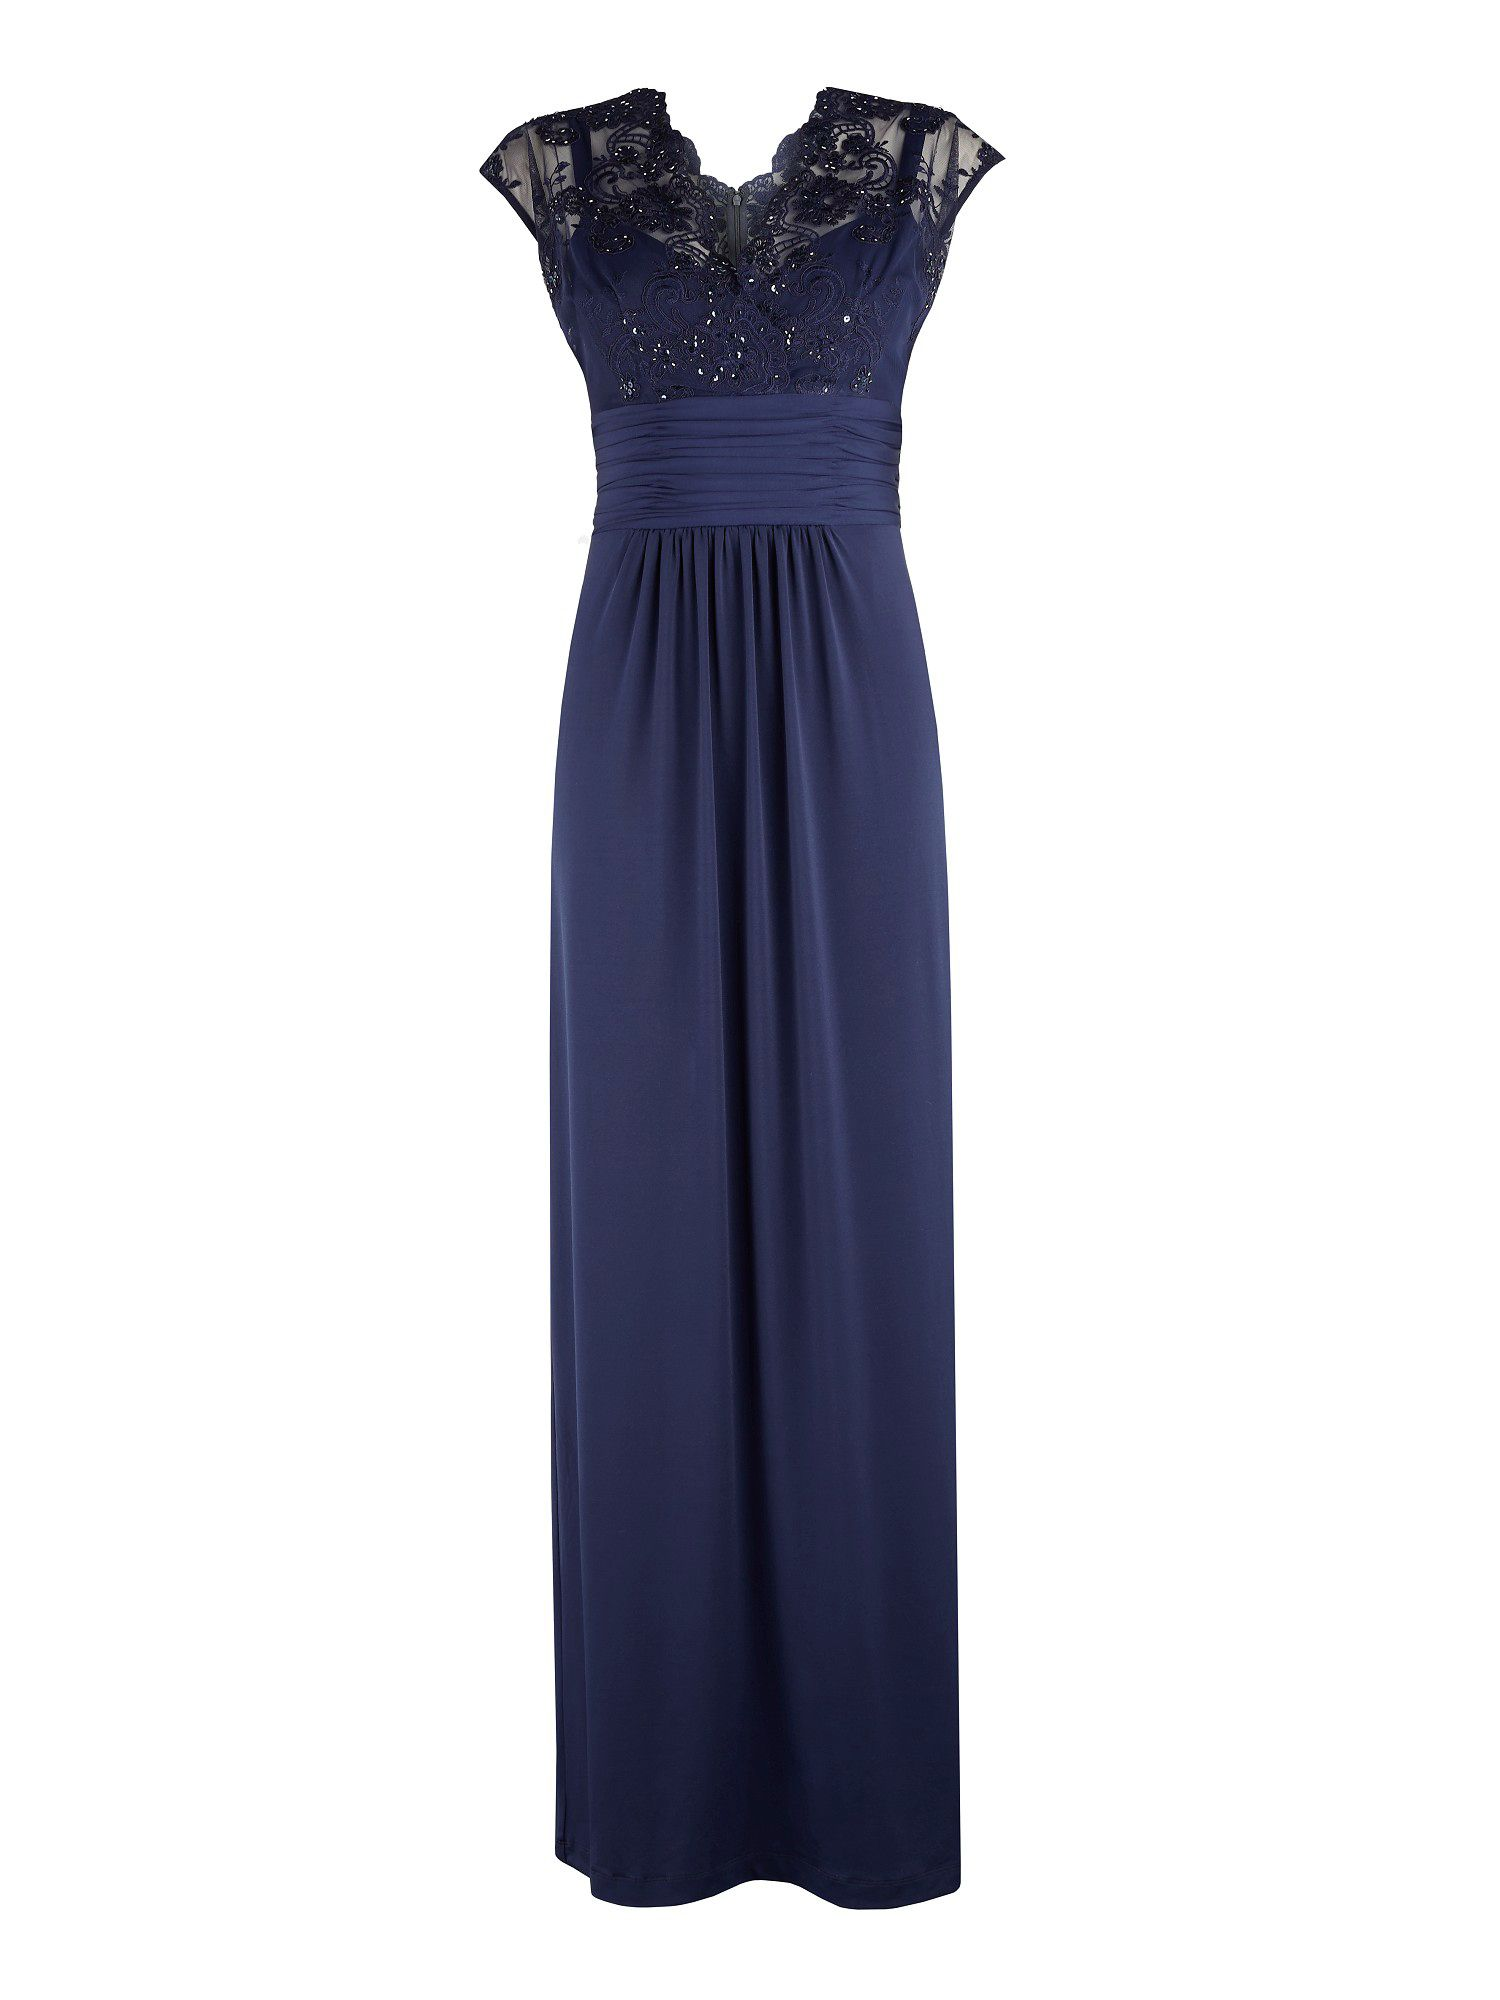 Shop navy maxi dress at Neiman Marcus, where you will find free shipping on the latest in fashion from top designers.